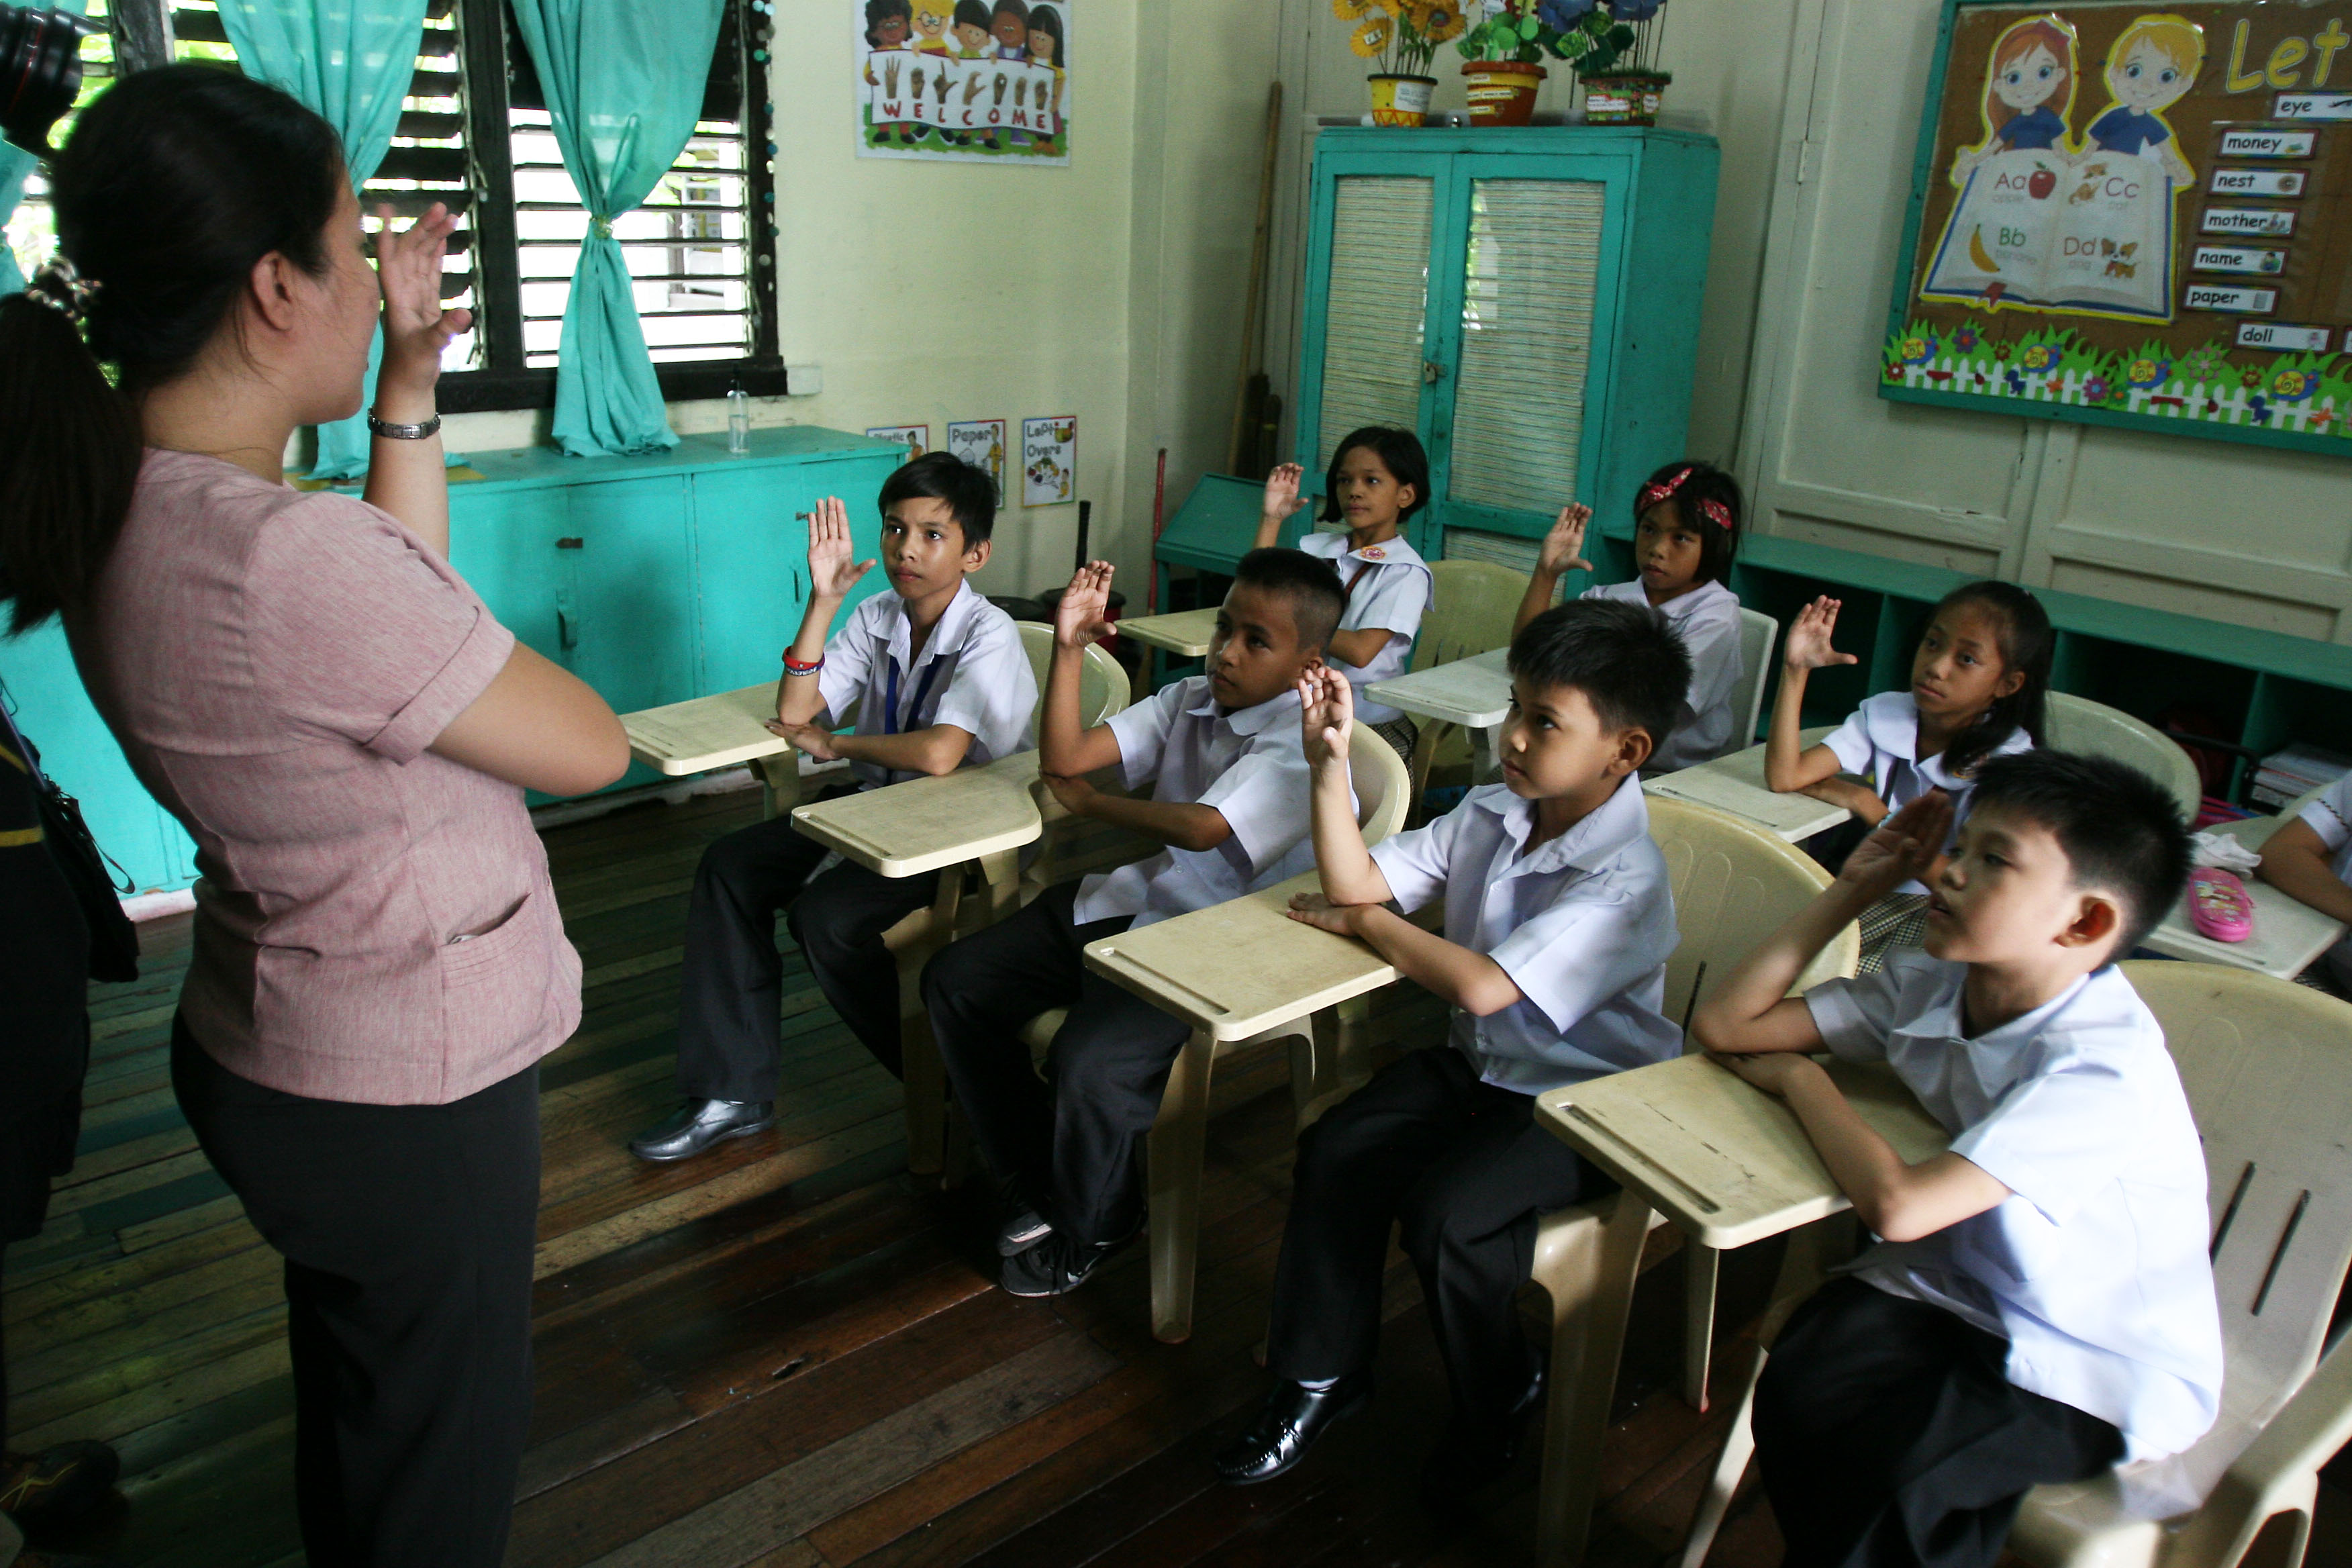 SIGN LANGUAGE. Deaf students recite the alphabet in sign language during the opening of classes at the Philippine School for the Deaf in Pasay City on June 5, 2017. Photo by Ben Nabong/Rappler